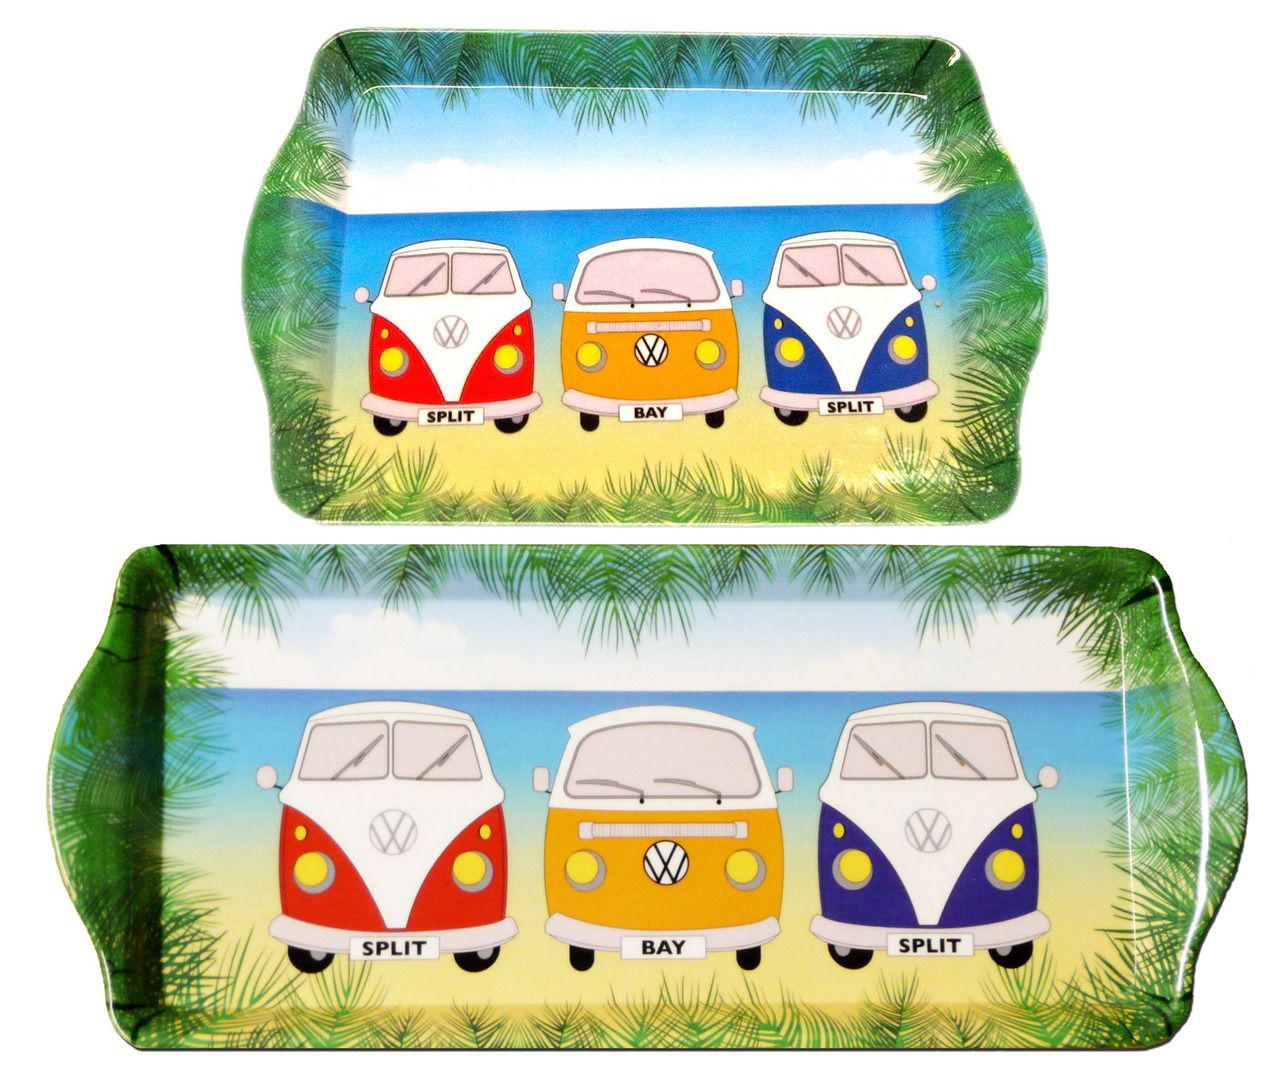 Campervan Gift Campervan Tray Set (Set of 2), £9.95